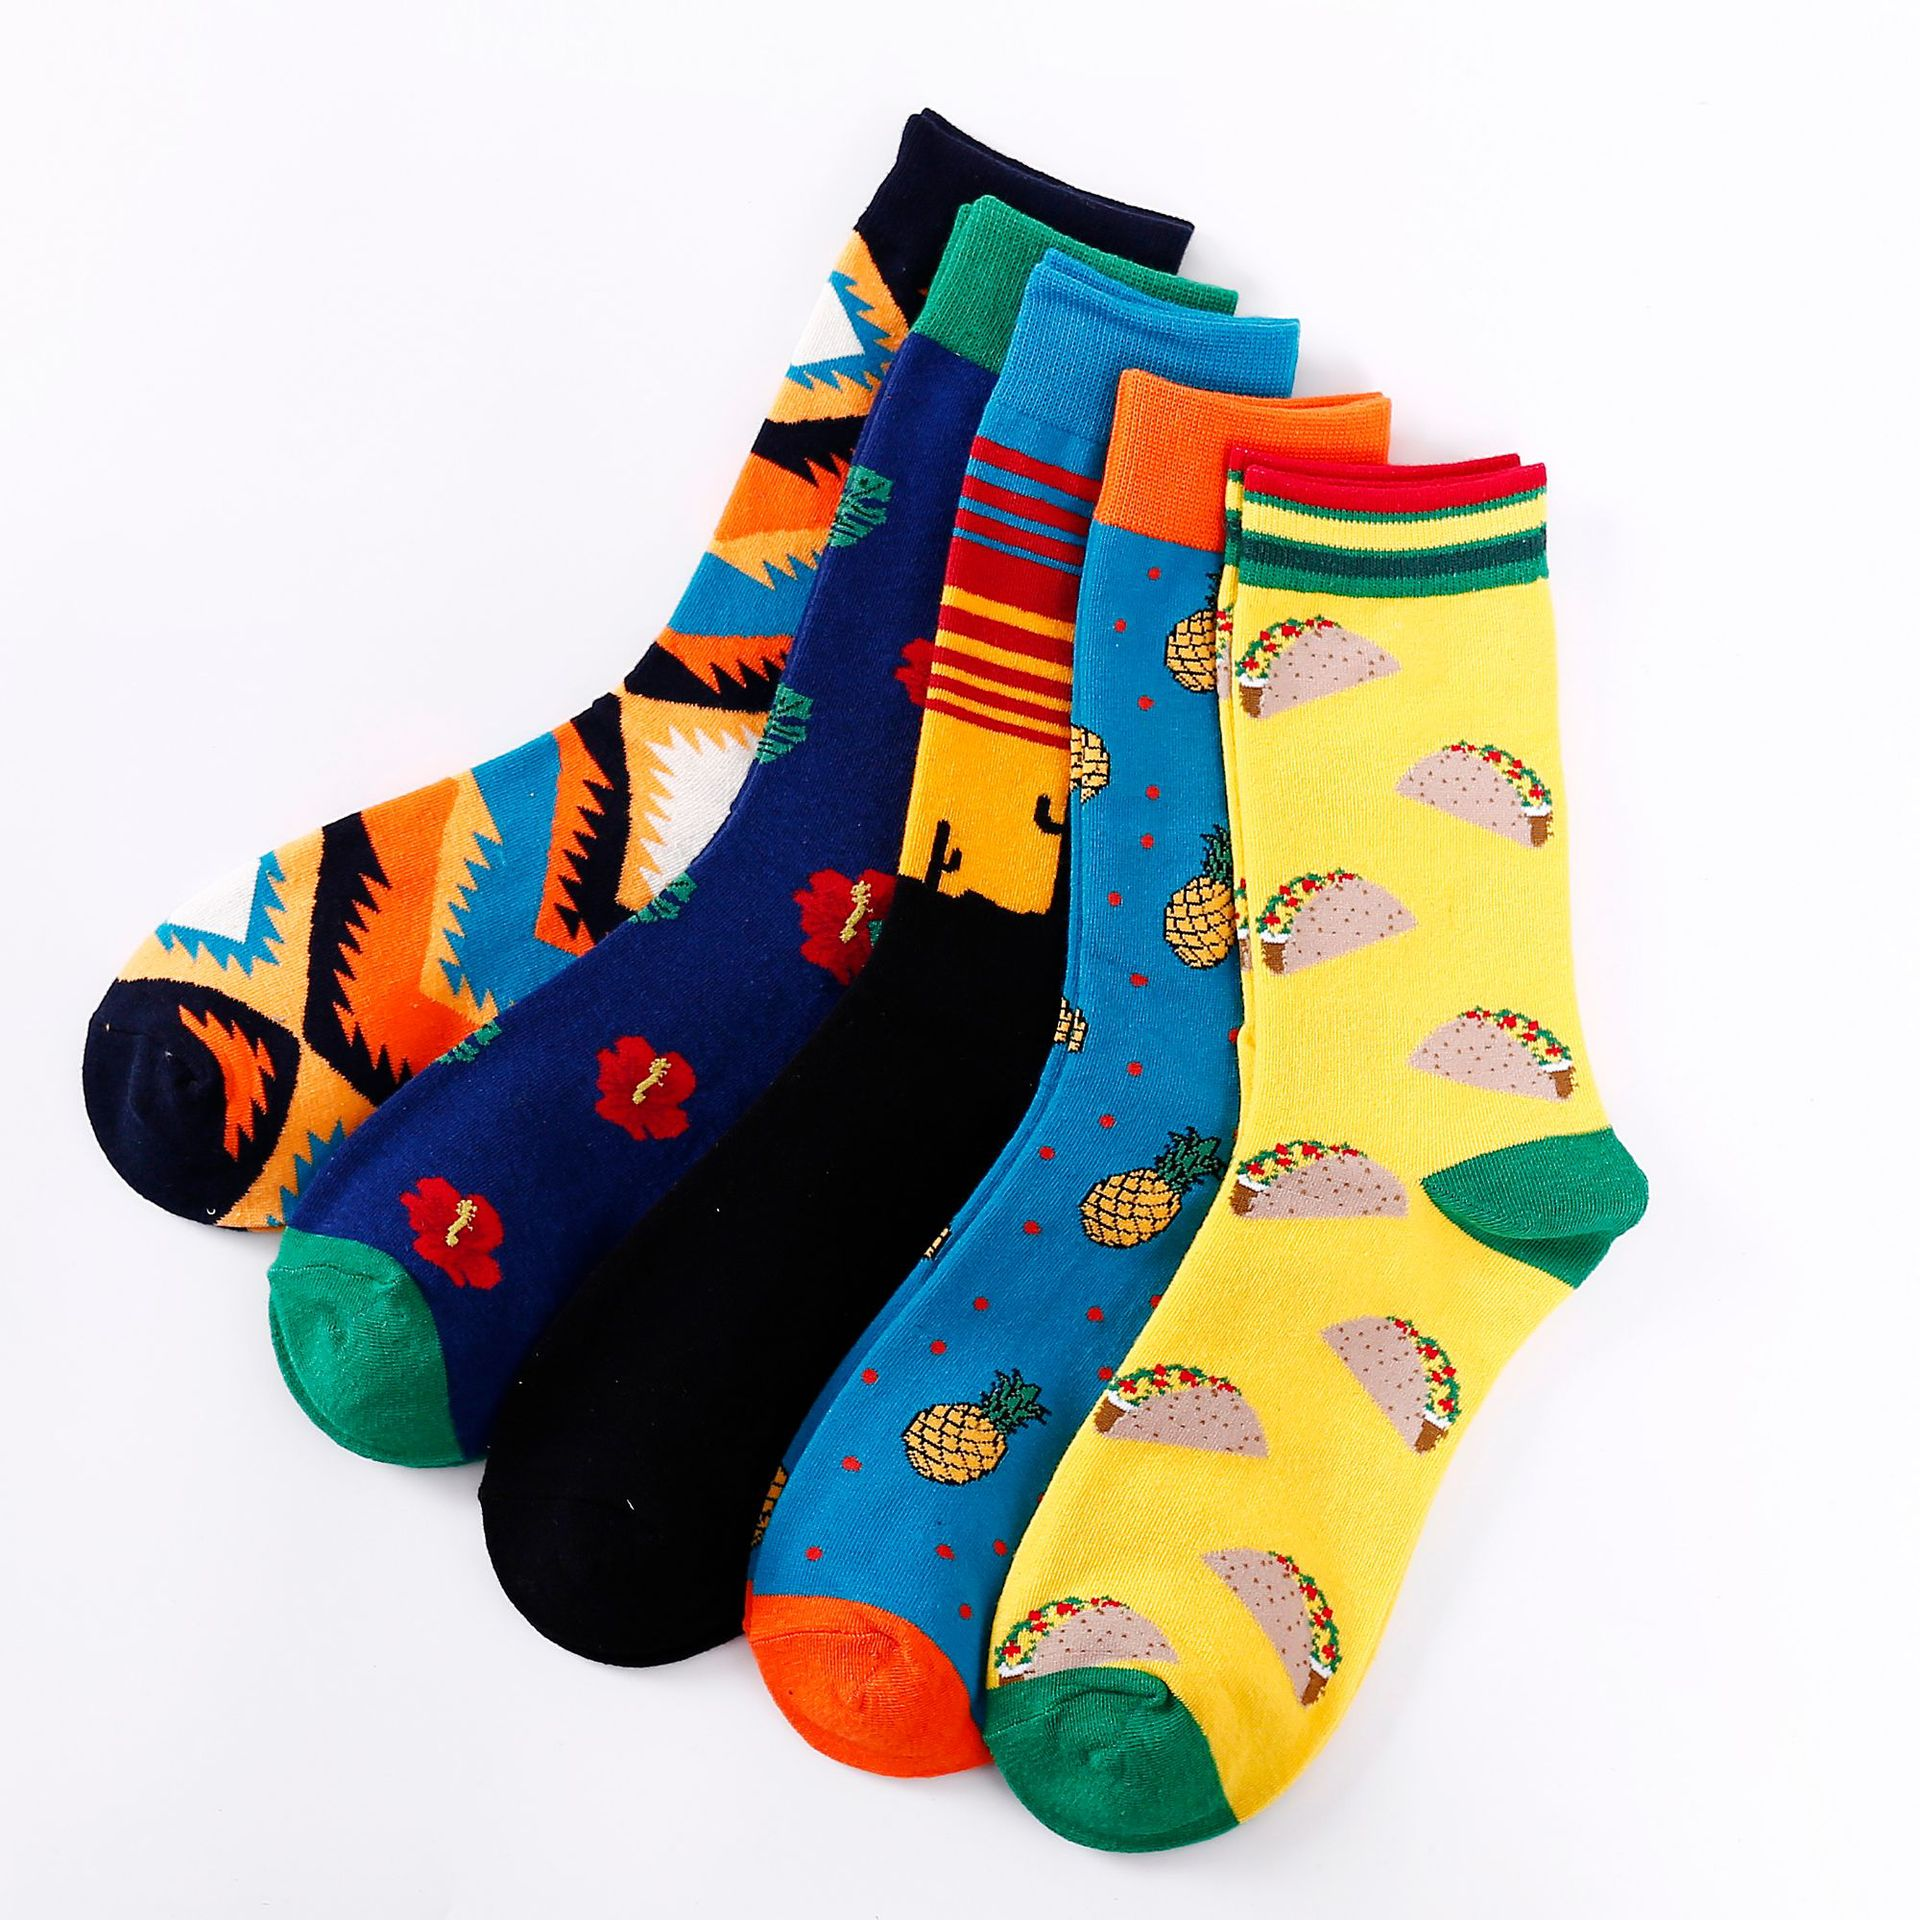 Cotton Socks Colorful Women Men Socks Crew Socks New Sandwiches Pineapple Socks Happy Funny Harajuku